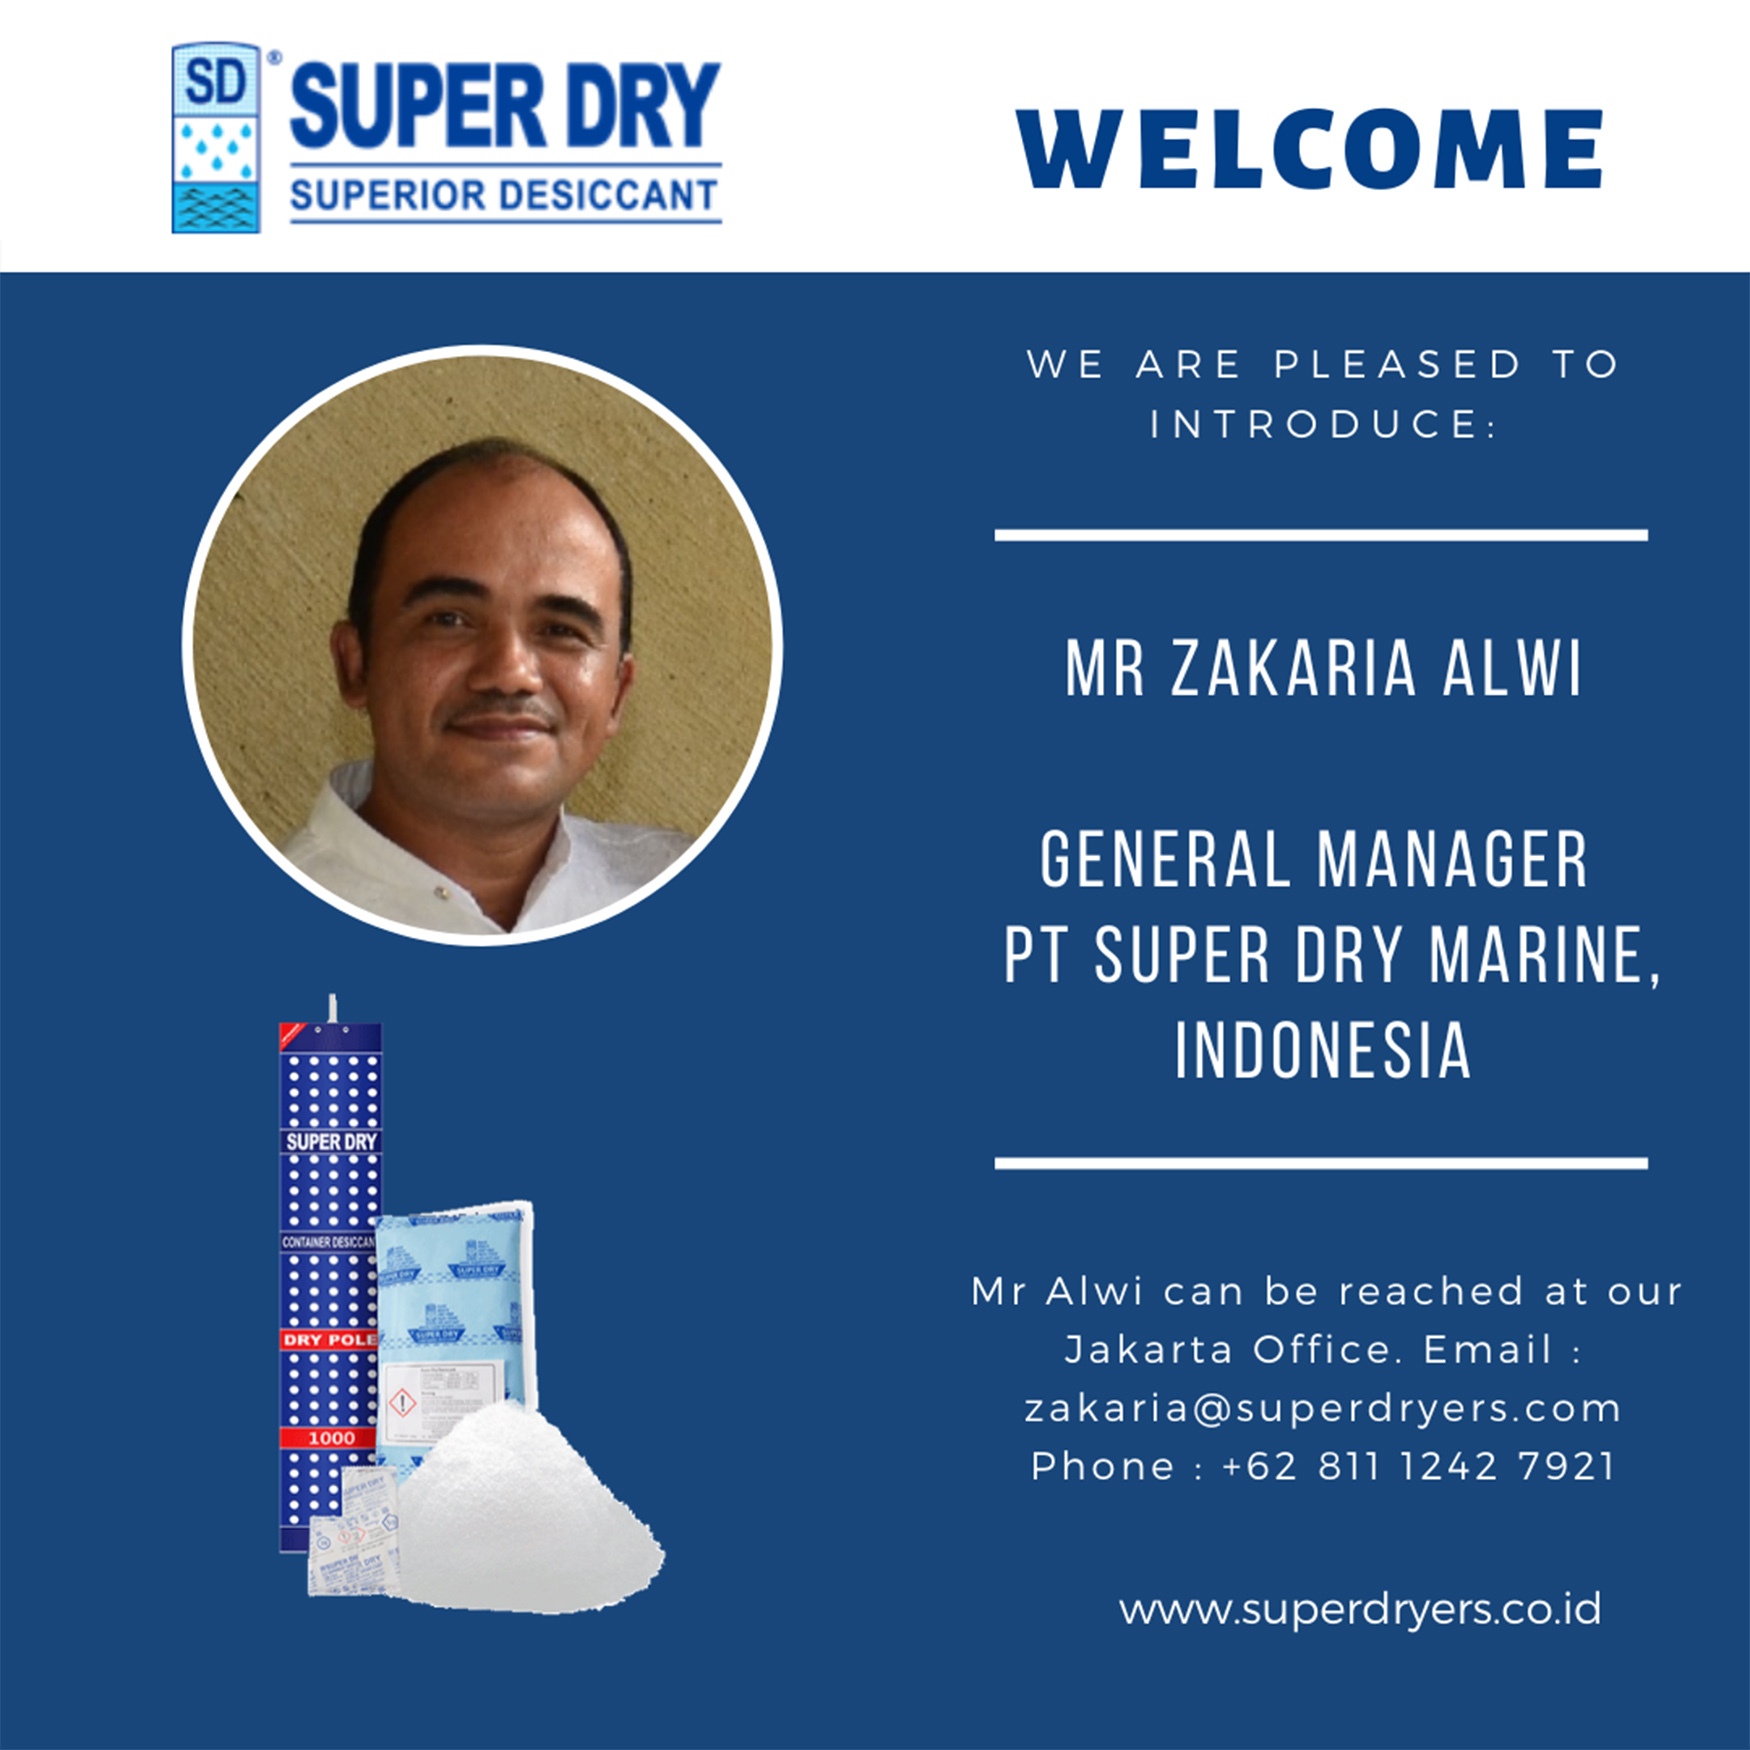 Announcement for new General Manager of PT Super Dry Marine